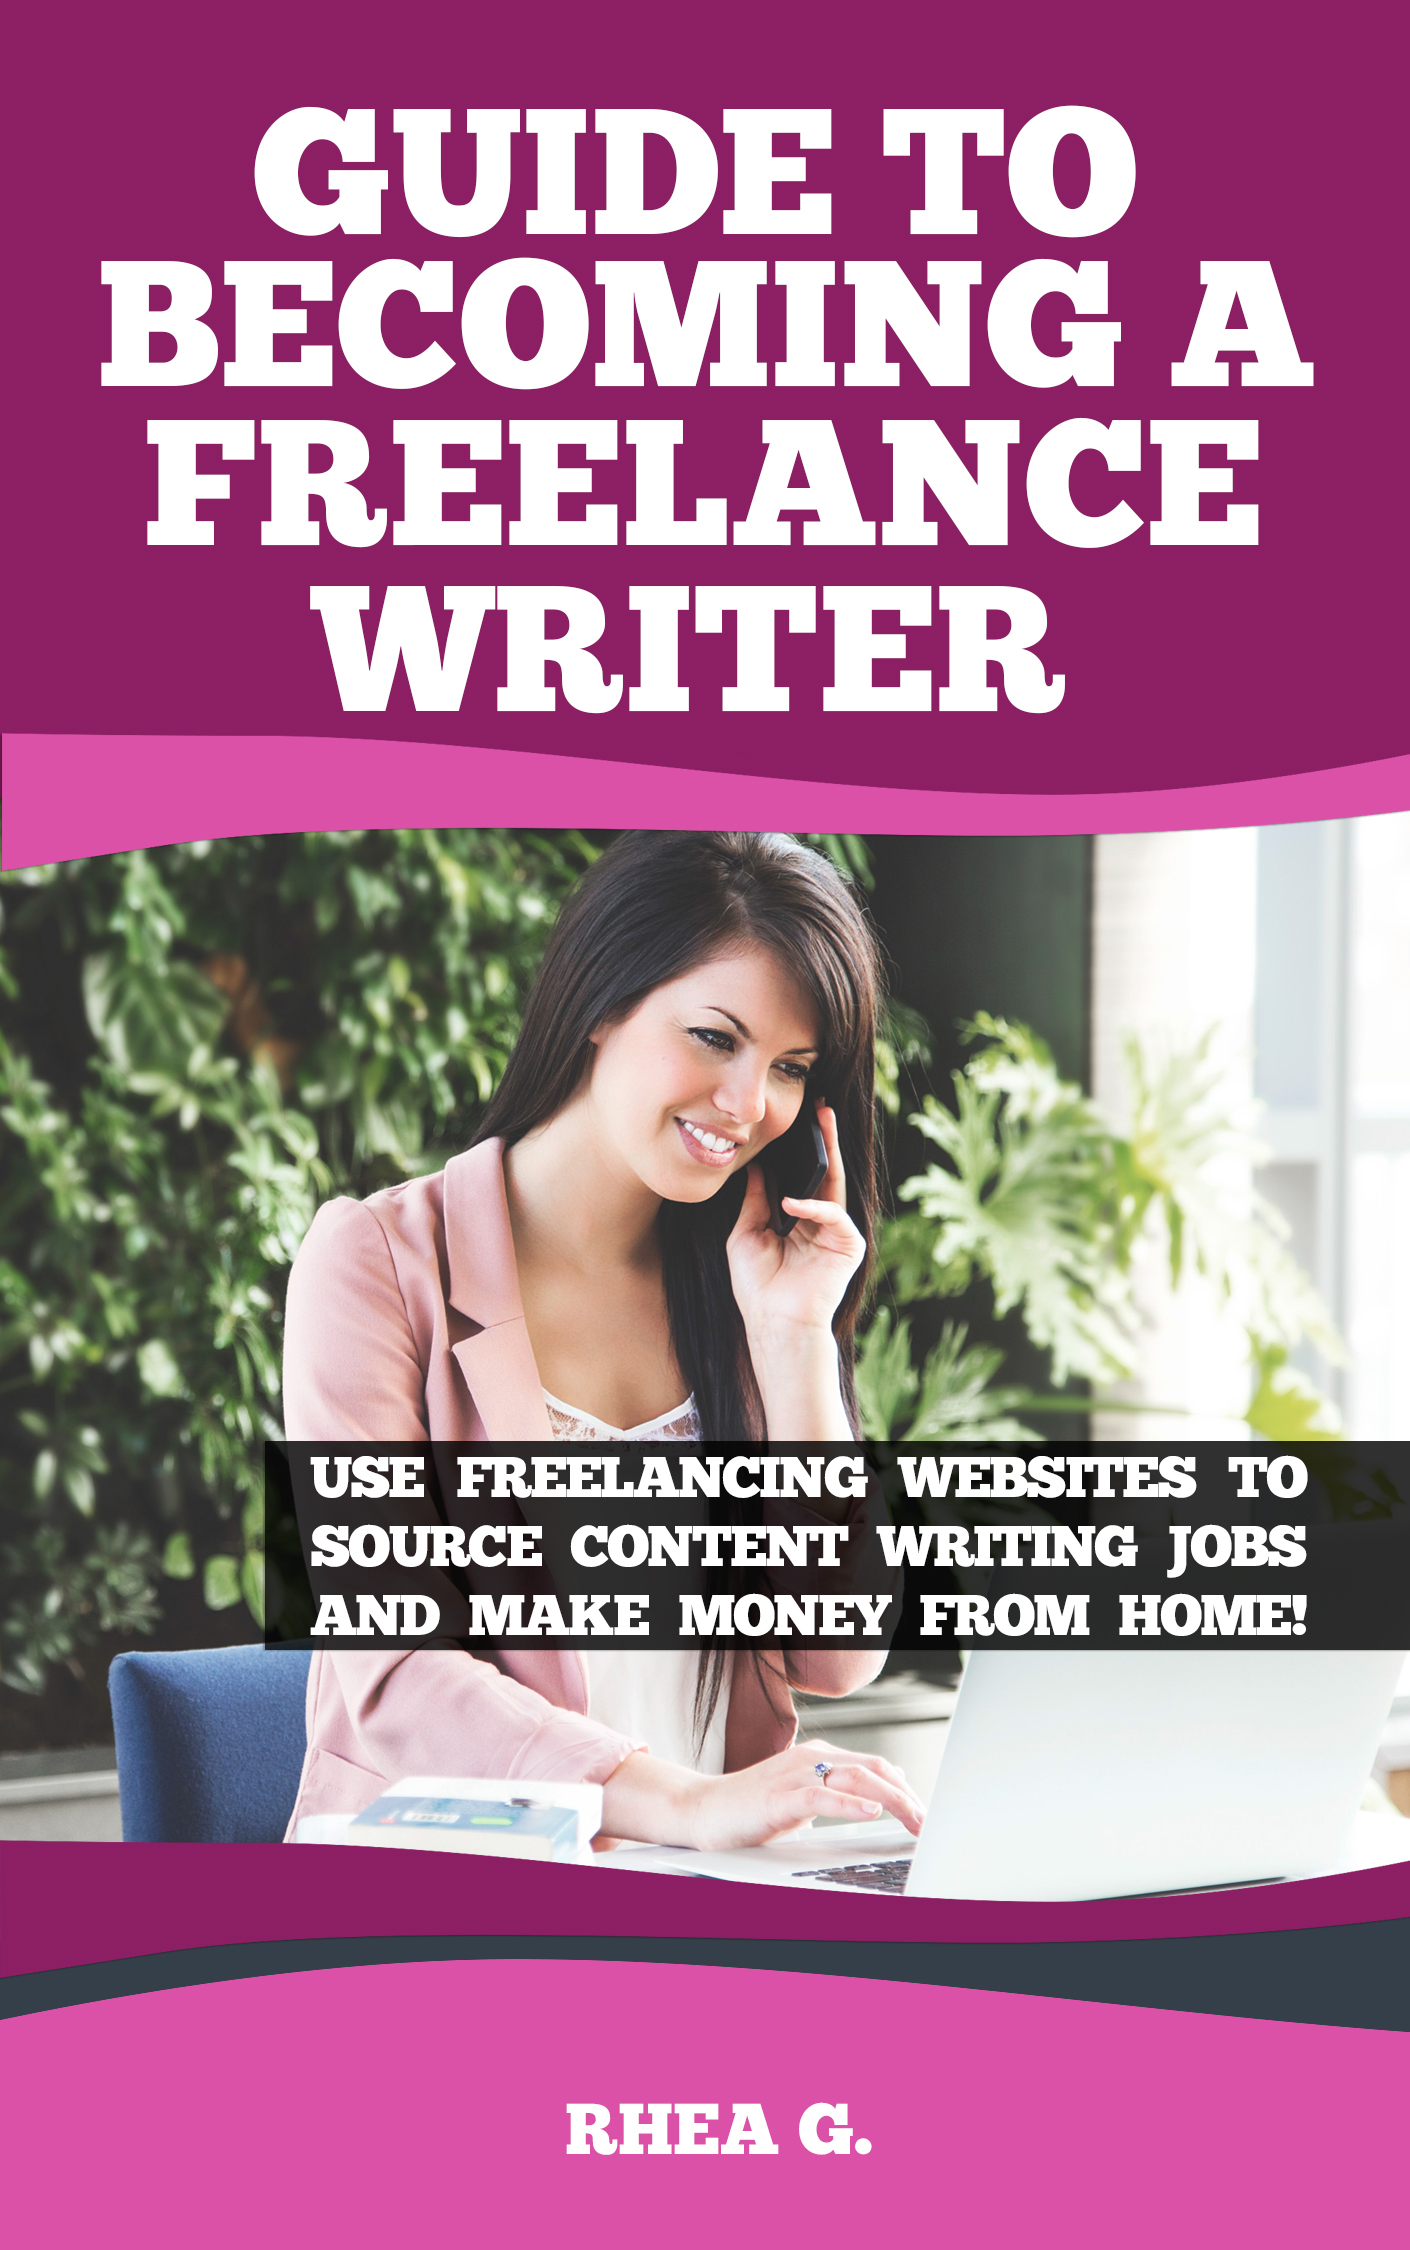 Download eBook for Free – Guide to Becoming a Freelance Writer: Use Freelancing Websites to Source Content Writing Jobs and Make Money from Home!